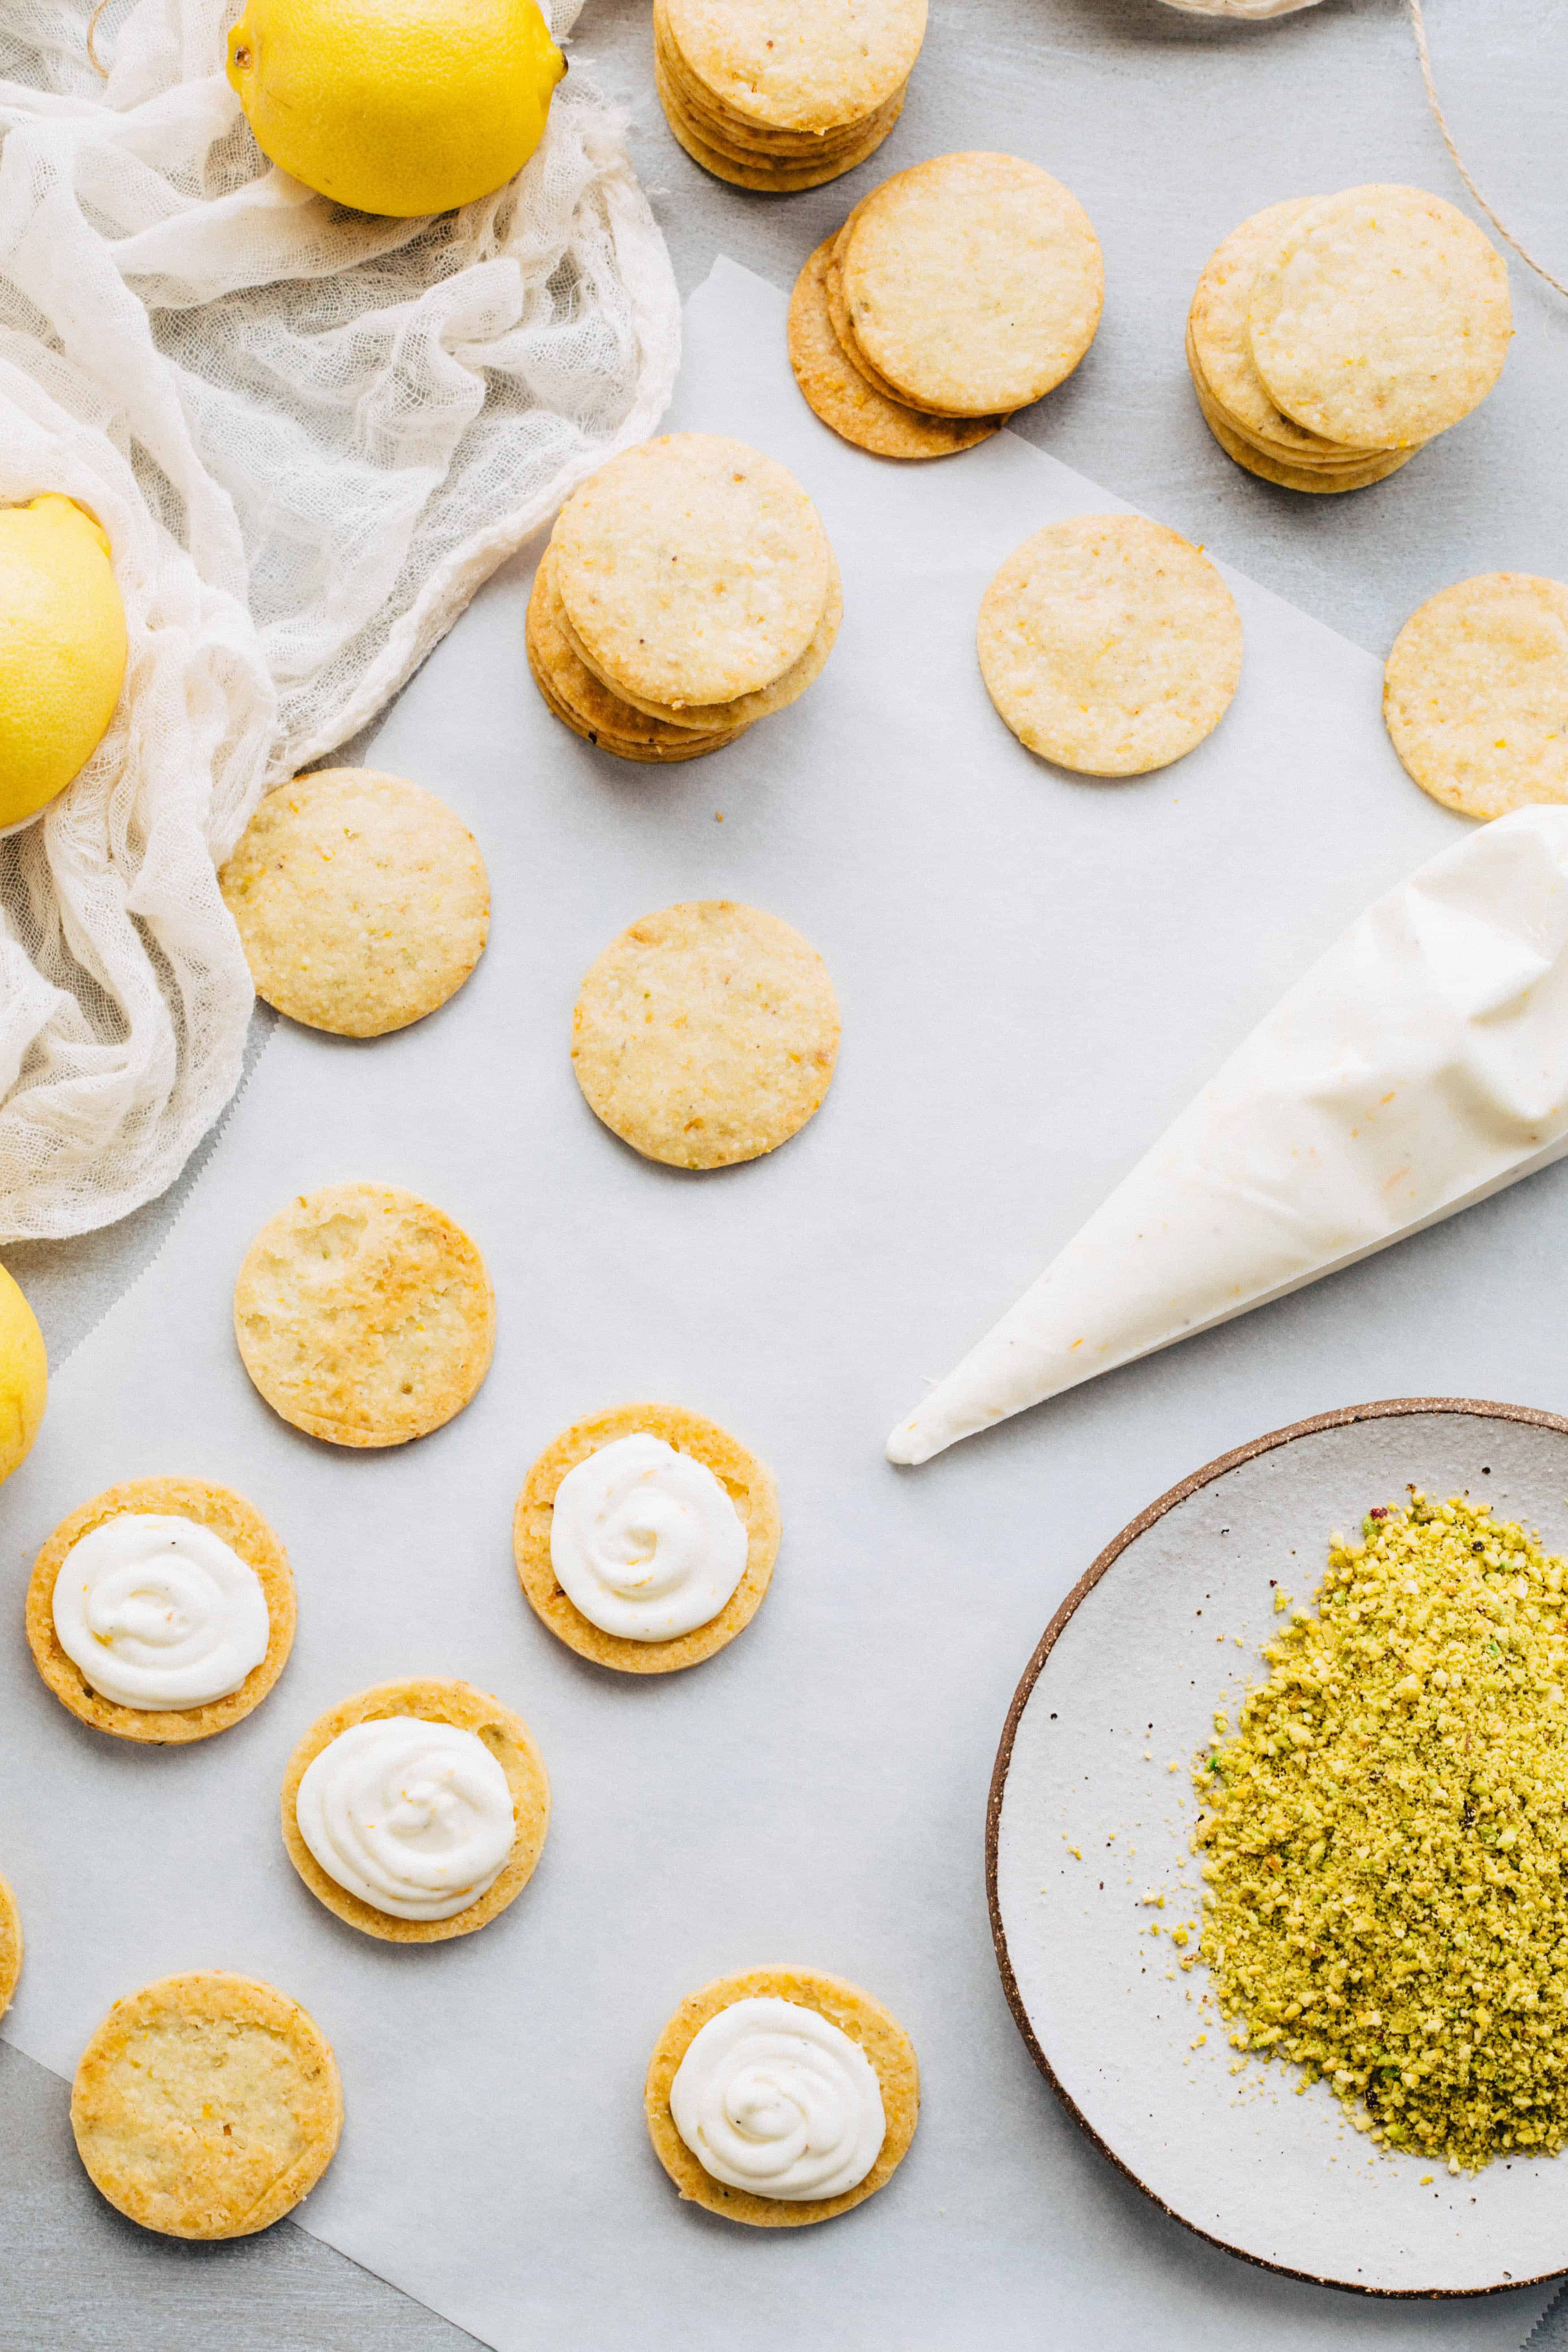 A pastry bag of filling and lemon pistachio cookies on a table, half of them with filling.